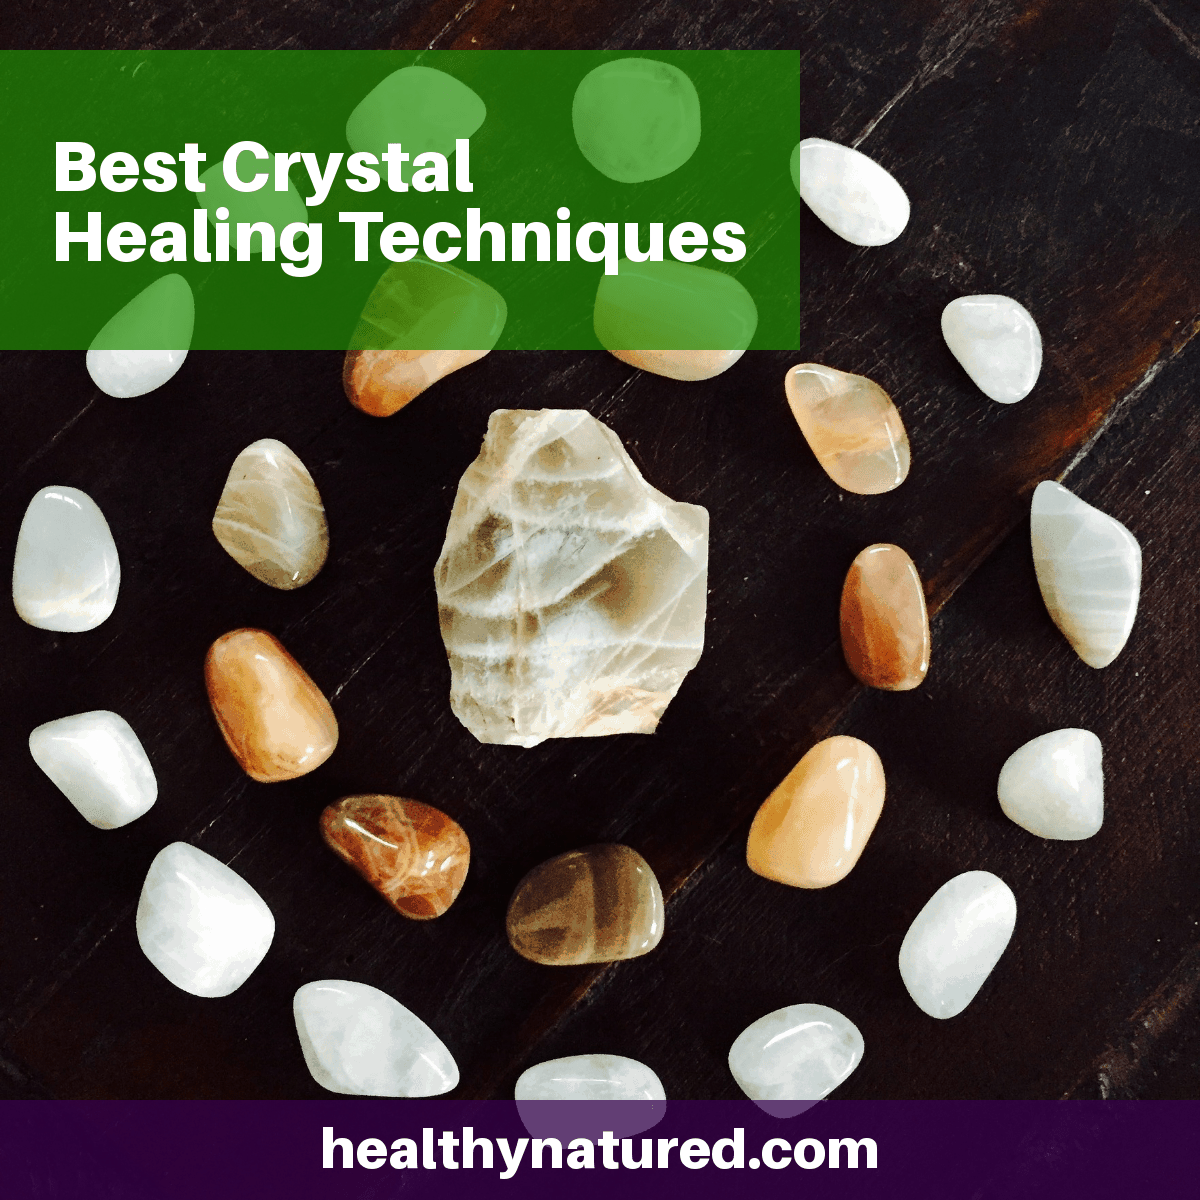 BEST CRYSTAL HEALING TECHNIQUES (TO OPTIMIZE HEALTH AND ACHIEVE BALANCE)